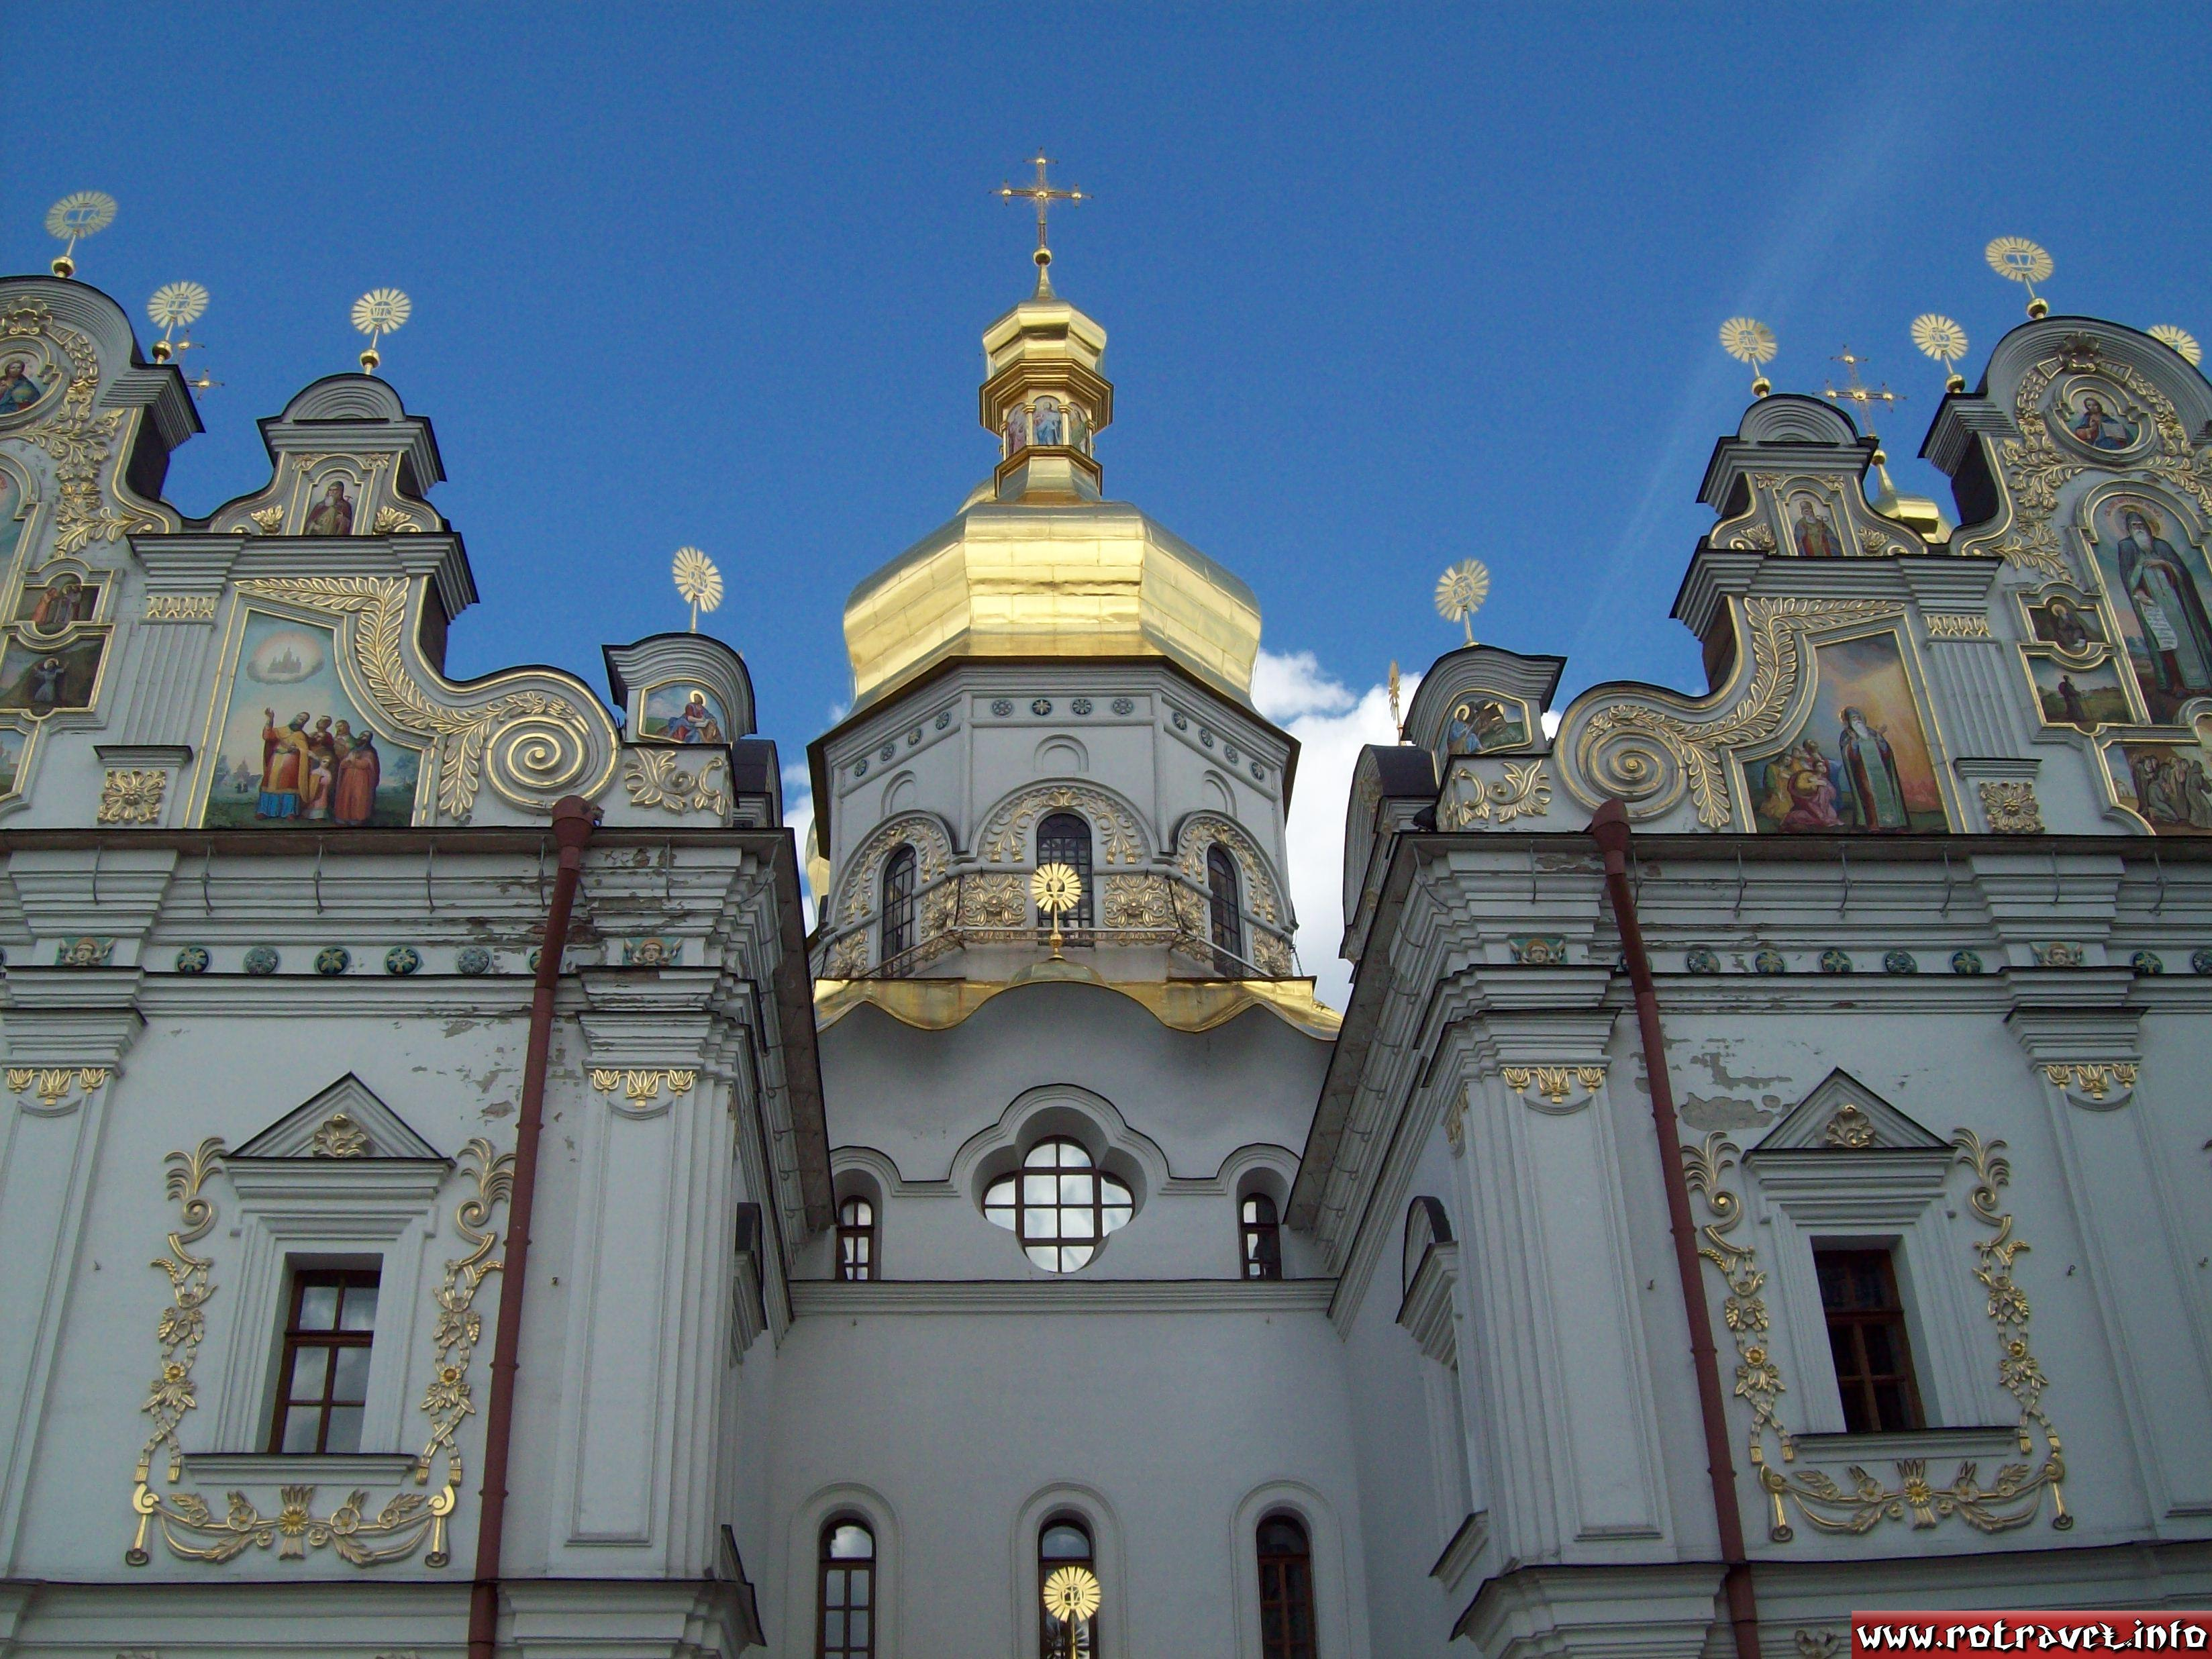 The same Cathedral